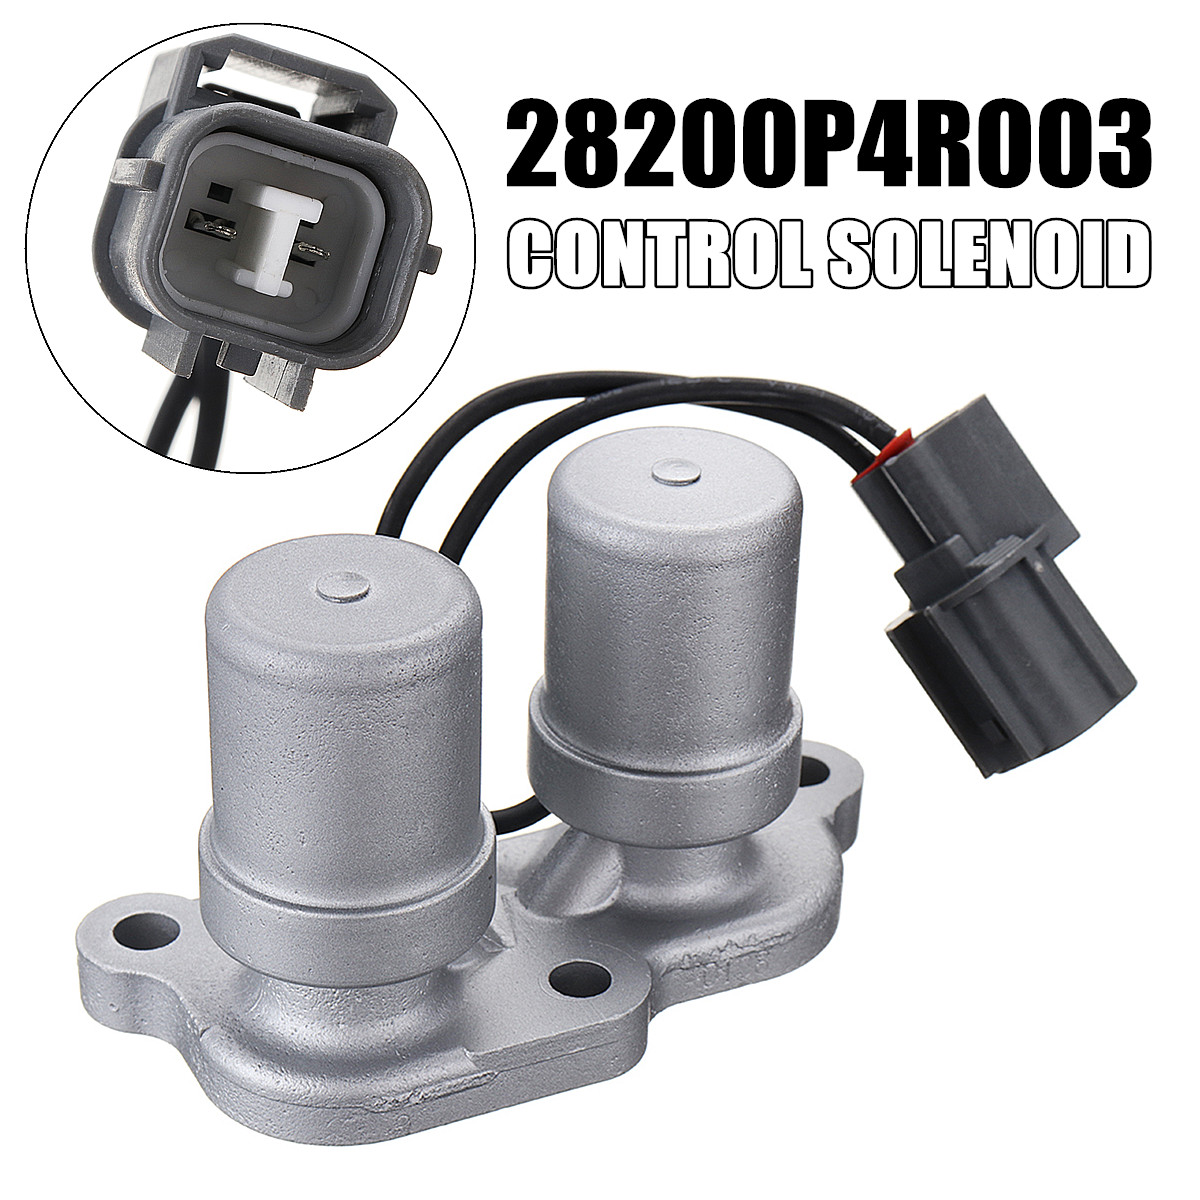 28200-P4R-003 Automatic Transmission Shift Control Solenoid 89x37x54mm for Honda-Civic 1996-2000 Auto Replacement Parts(China)